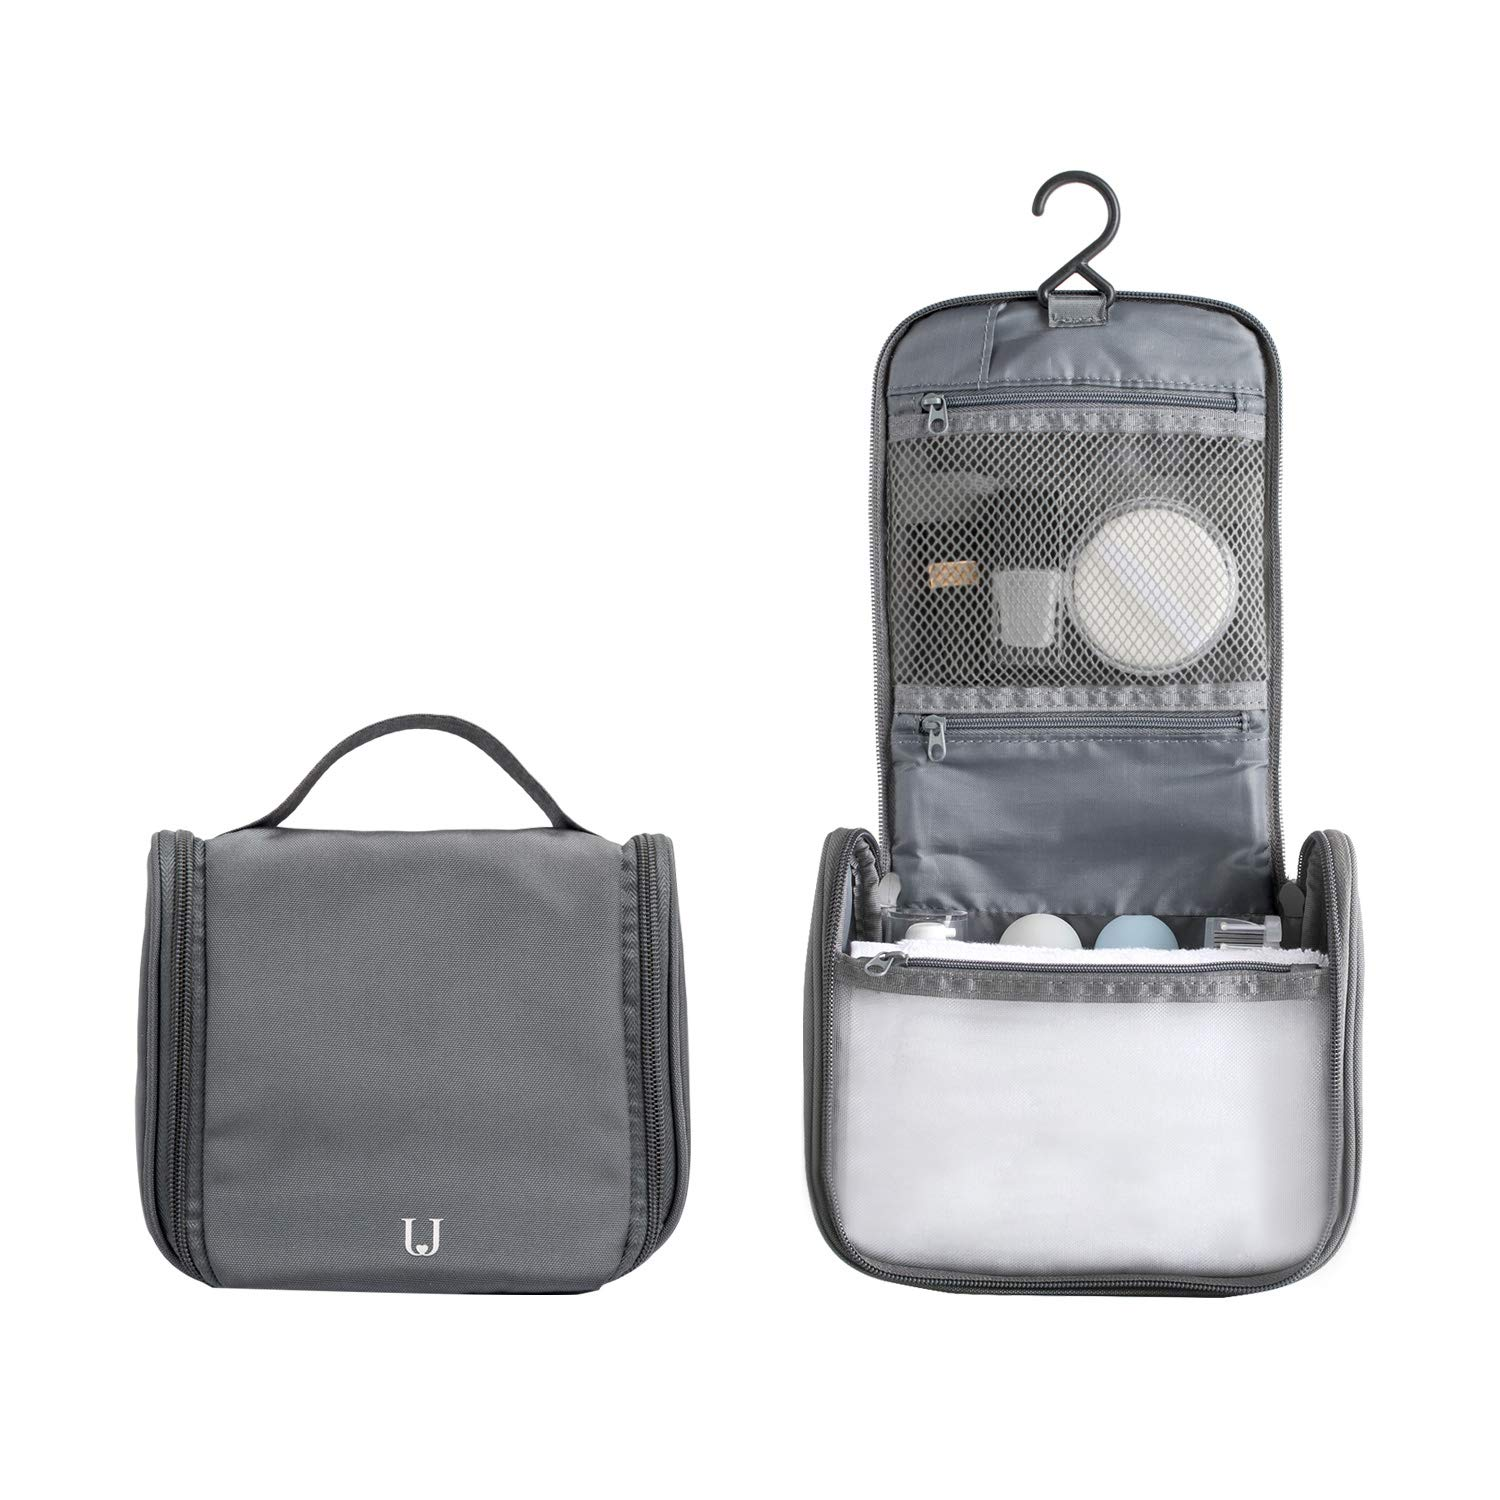 a9bf0a1ff3cfdd Travel Toiletry Bag Water Proof Nylon Wash Bag for Short Trip or Gym with  Hanging Hook (Dark Grey)  Amazon.co.uk  Luggage